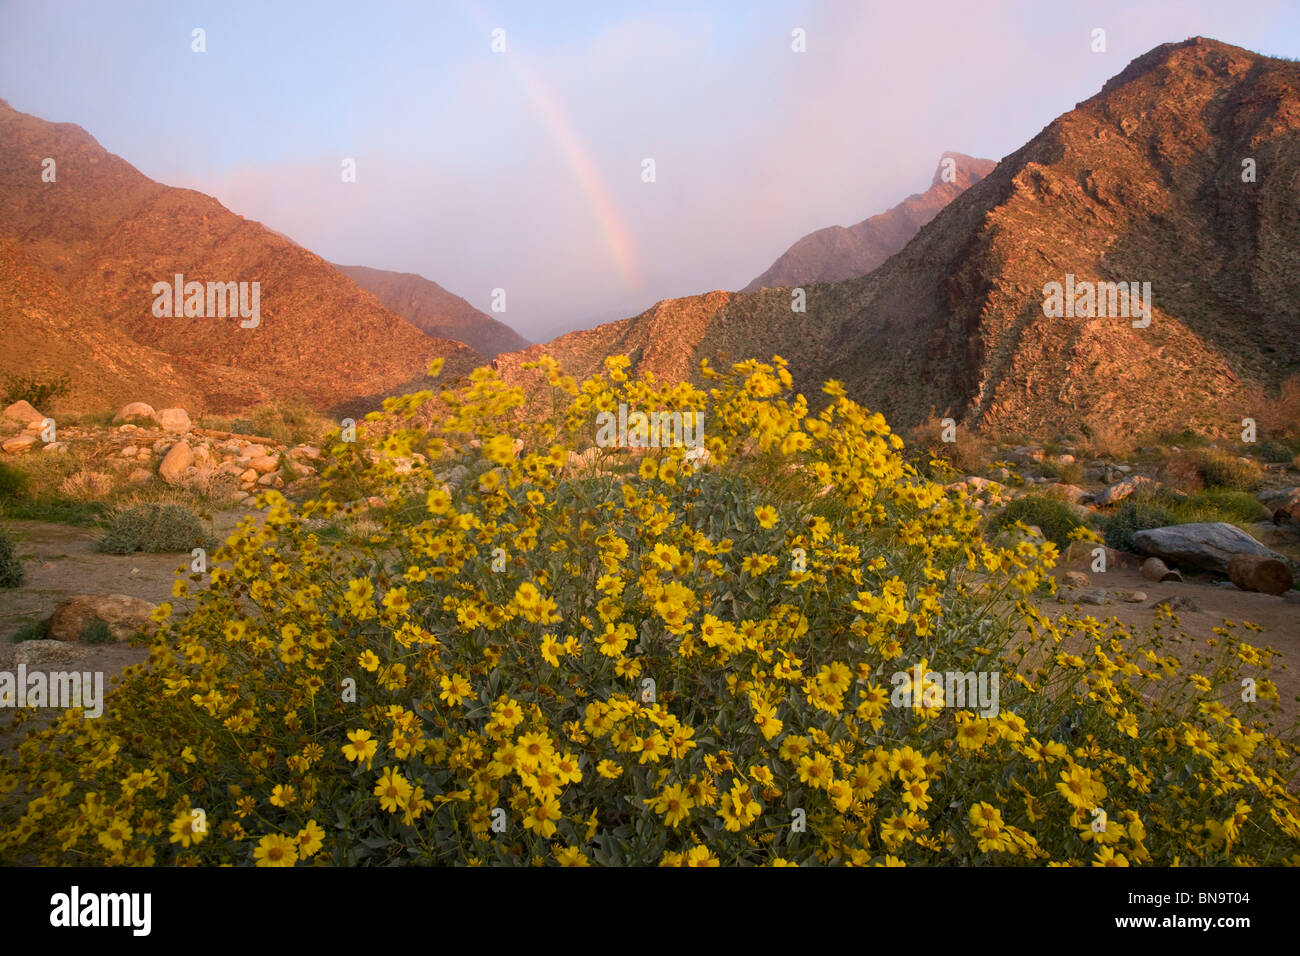 Wildflowers in Borrego Palm Canyon, Anza-Borrego Desert State Park, California. - Stock Image